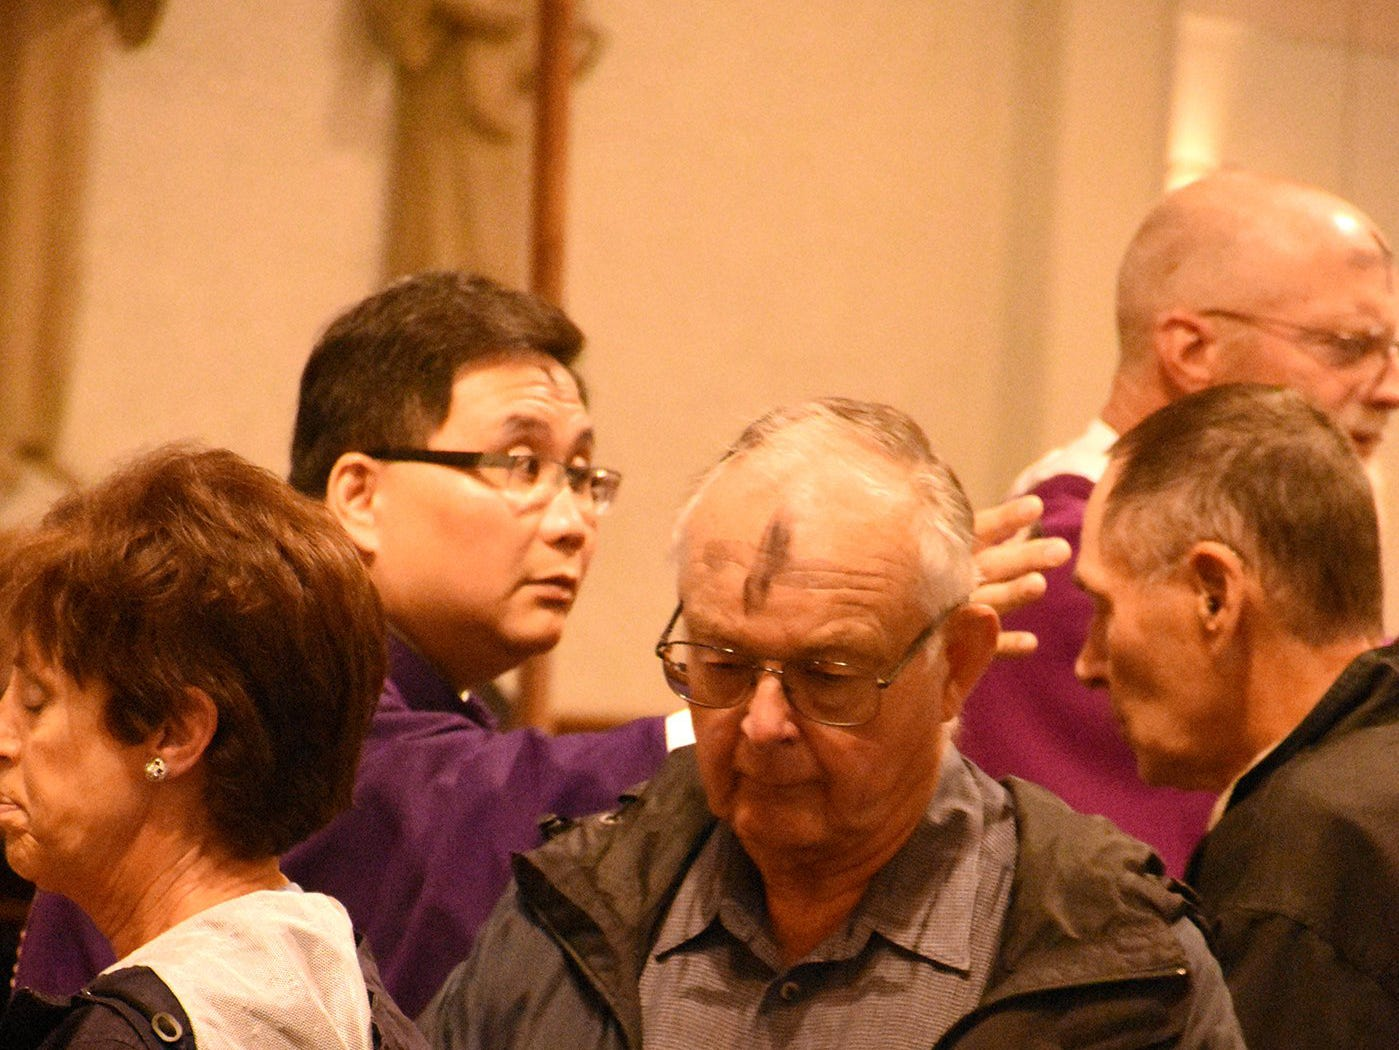 Rev. Duong Nguyen applies ashes to worshippers at San Marco Catholic Church. Catholics on Marco Island and around the world, along with many other Christians, celebrated Ash Wednesday by attending mass and having a cross drawn on their foreheads in ashes.